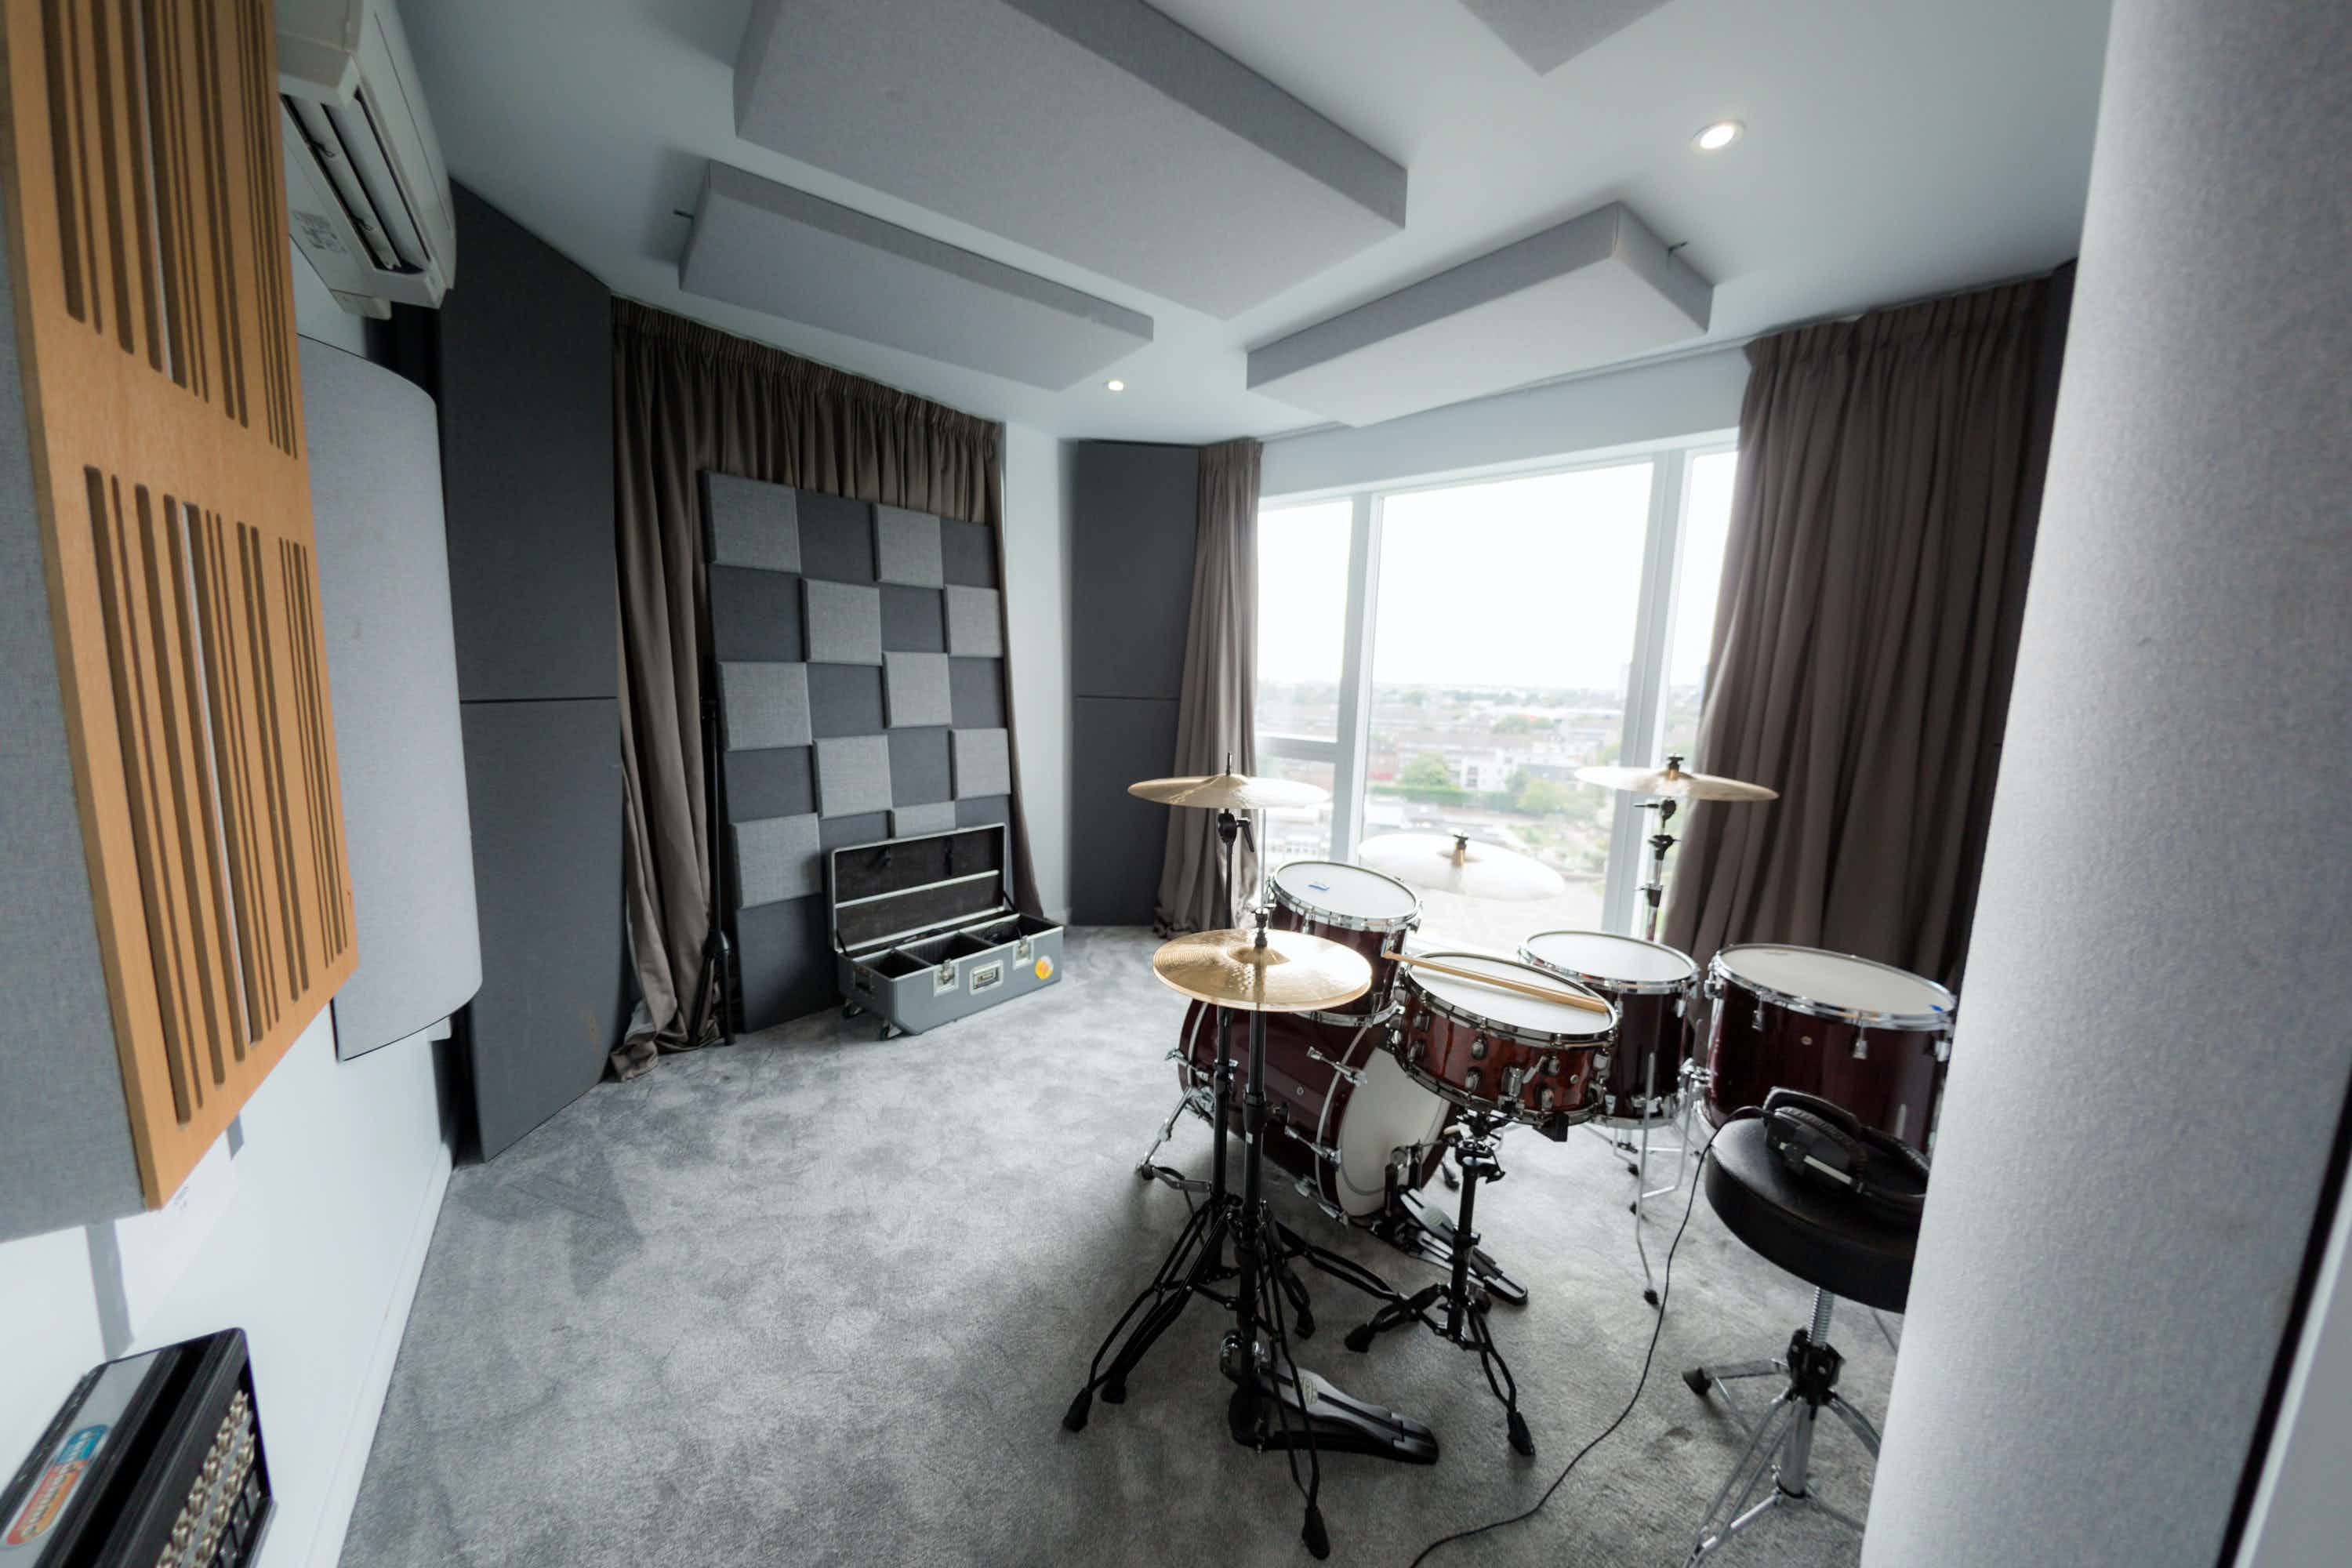 Stunning Penthouse Recording Studio in West London, SkyTop Productions